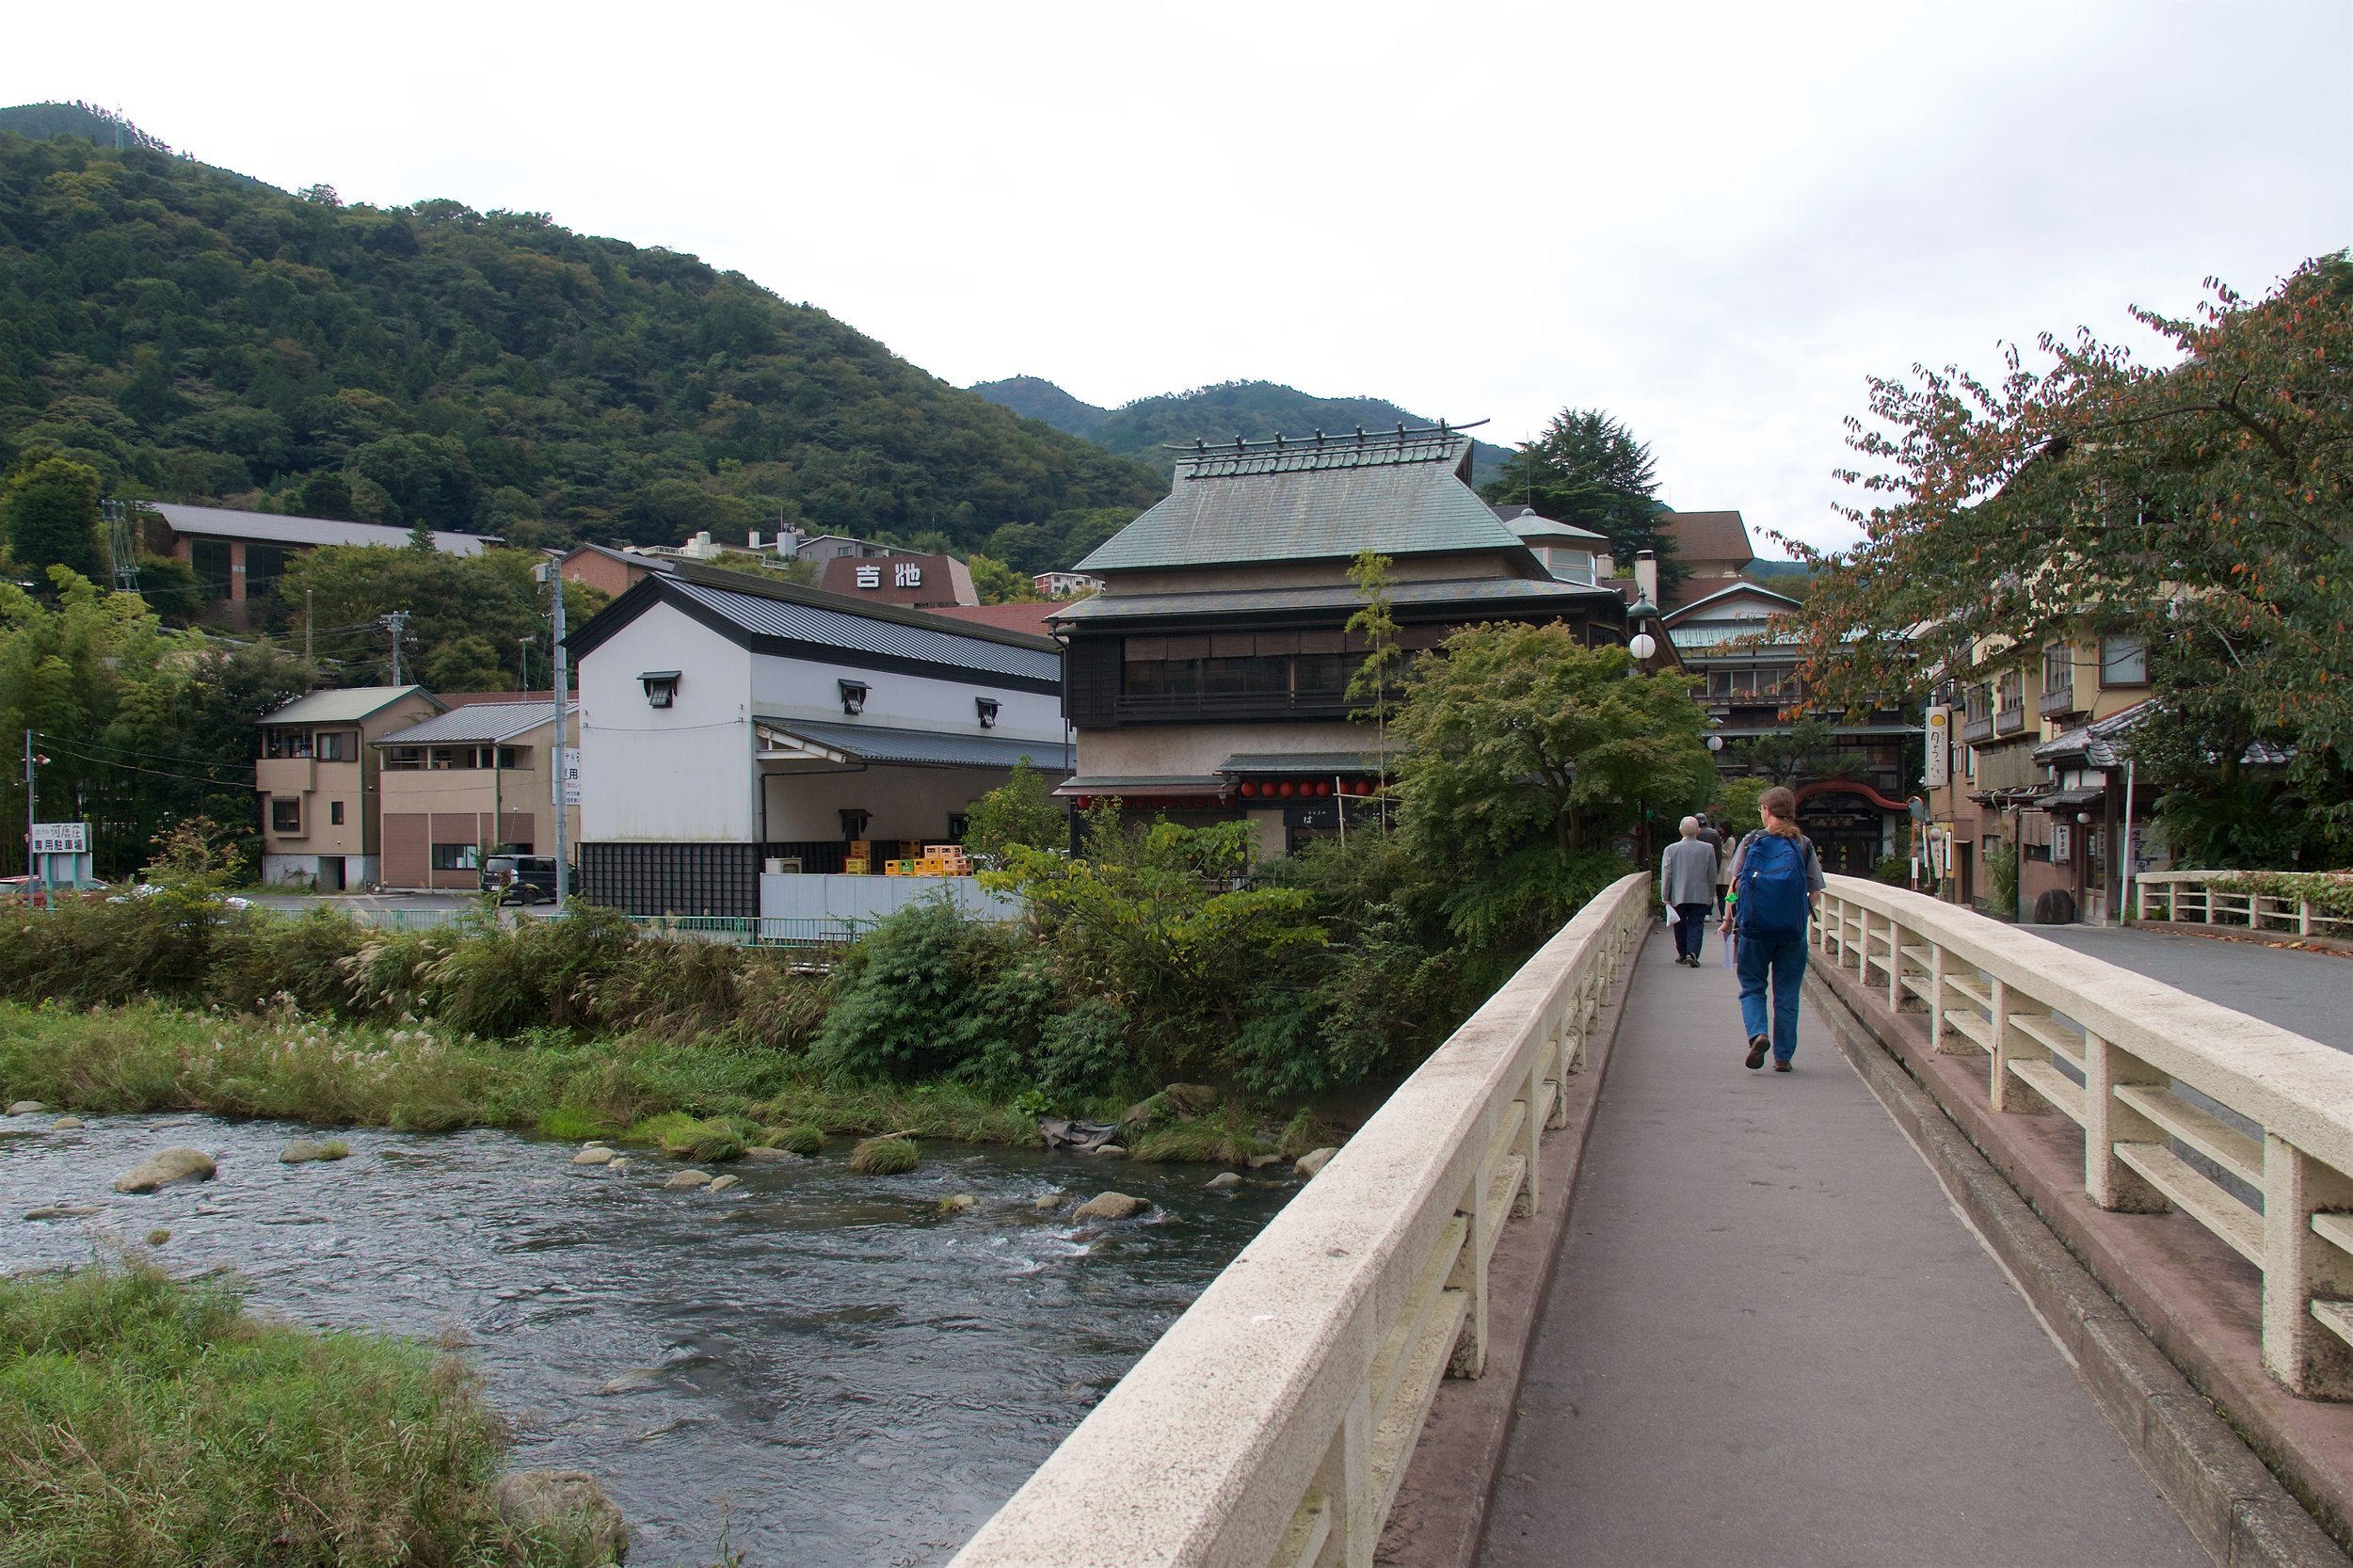 Crossing the Hayakawa River on our way to our hostel